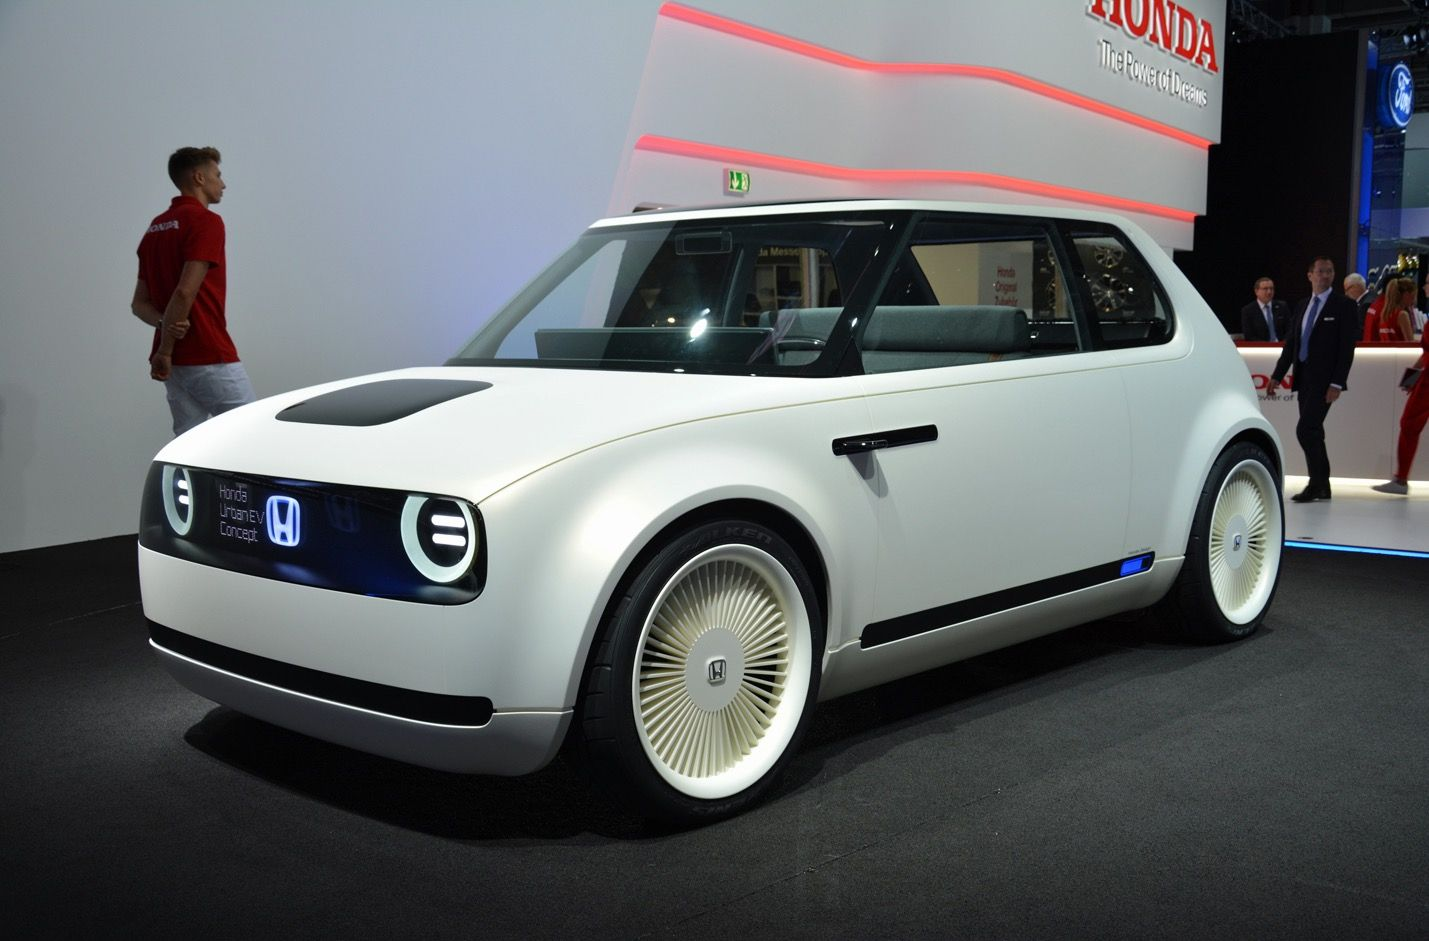 Honda Urban Ev Concept Is A Retro Looking Electric Car Built Vehicle - Medium